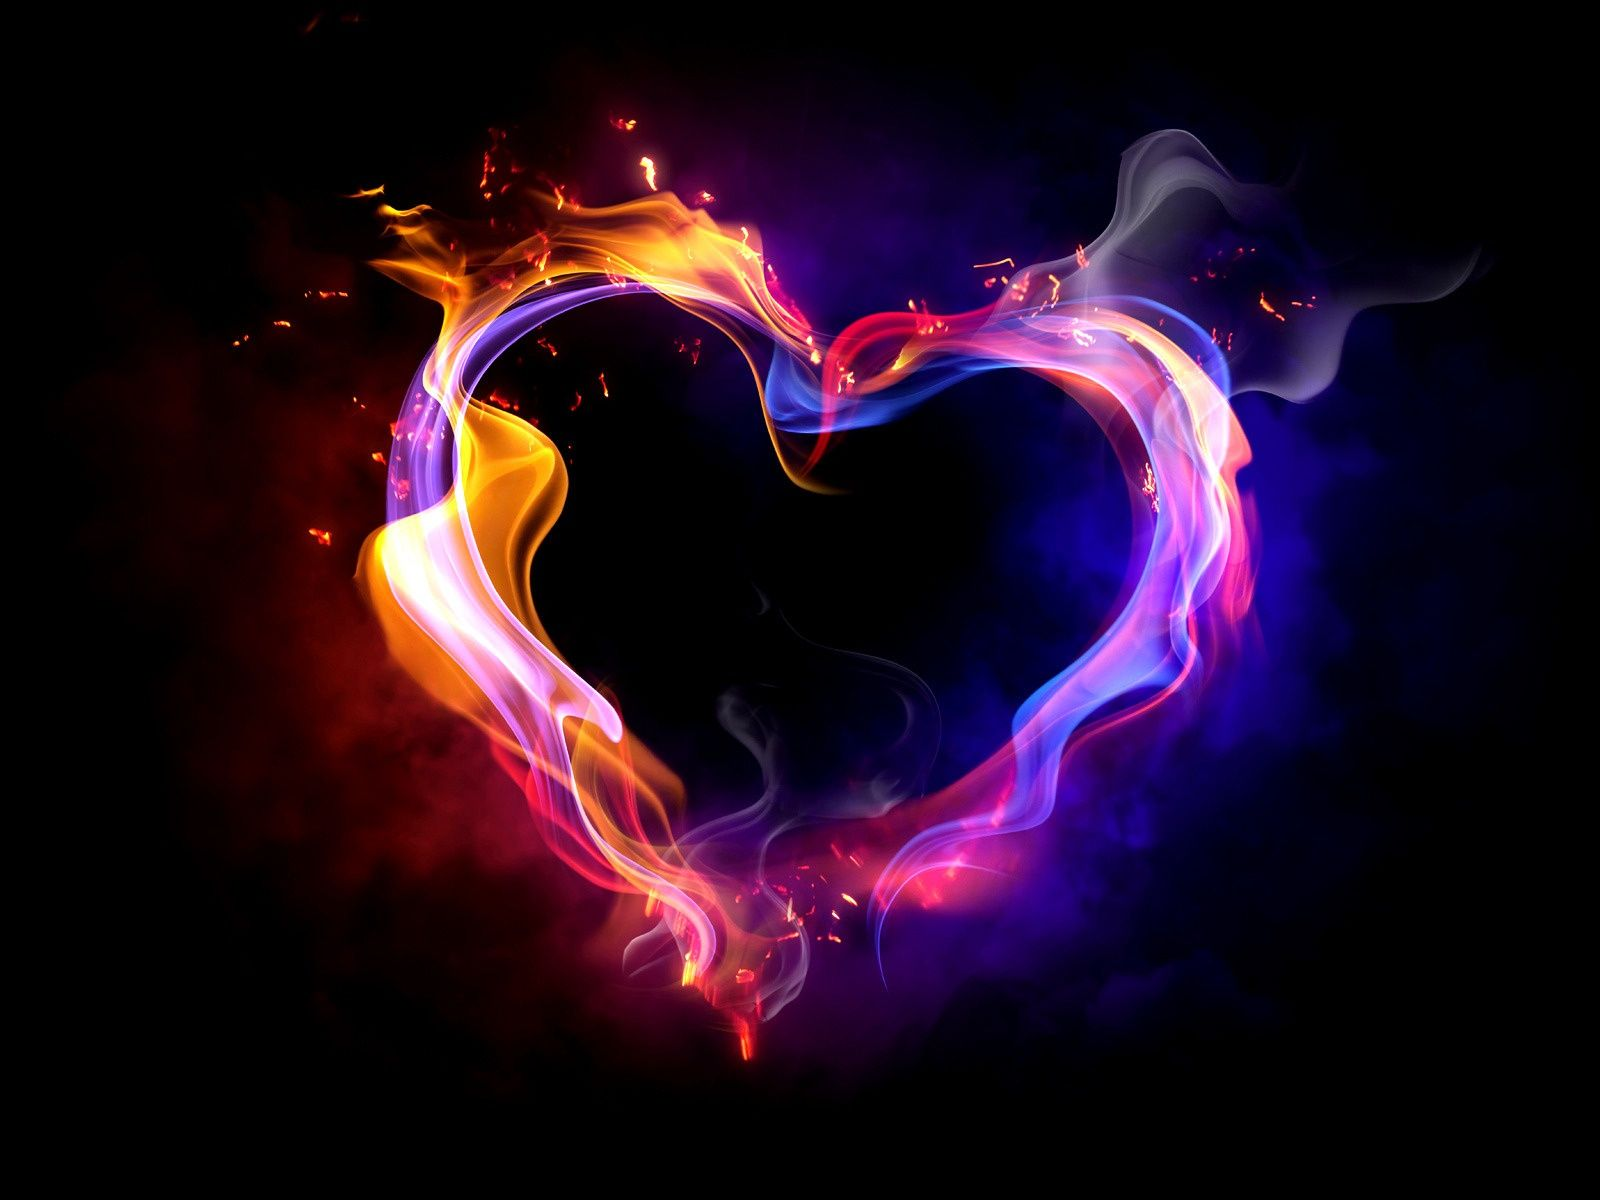 Hd wallpaper 3d fire love free download 449 high definition.